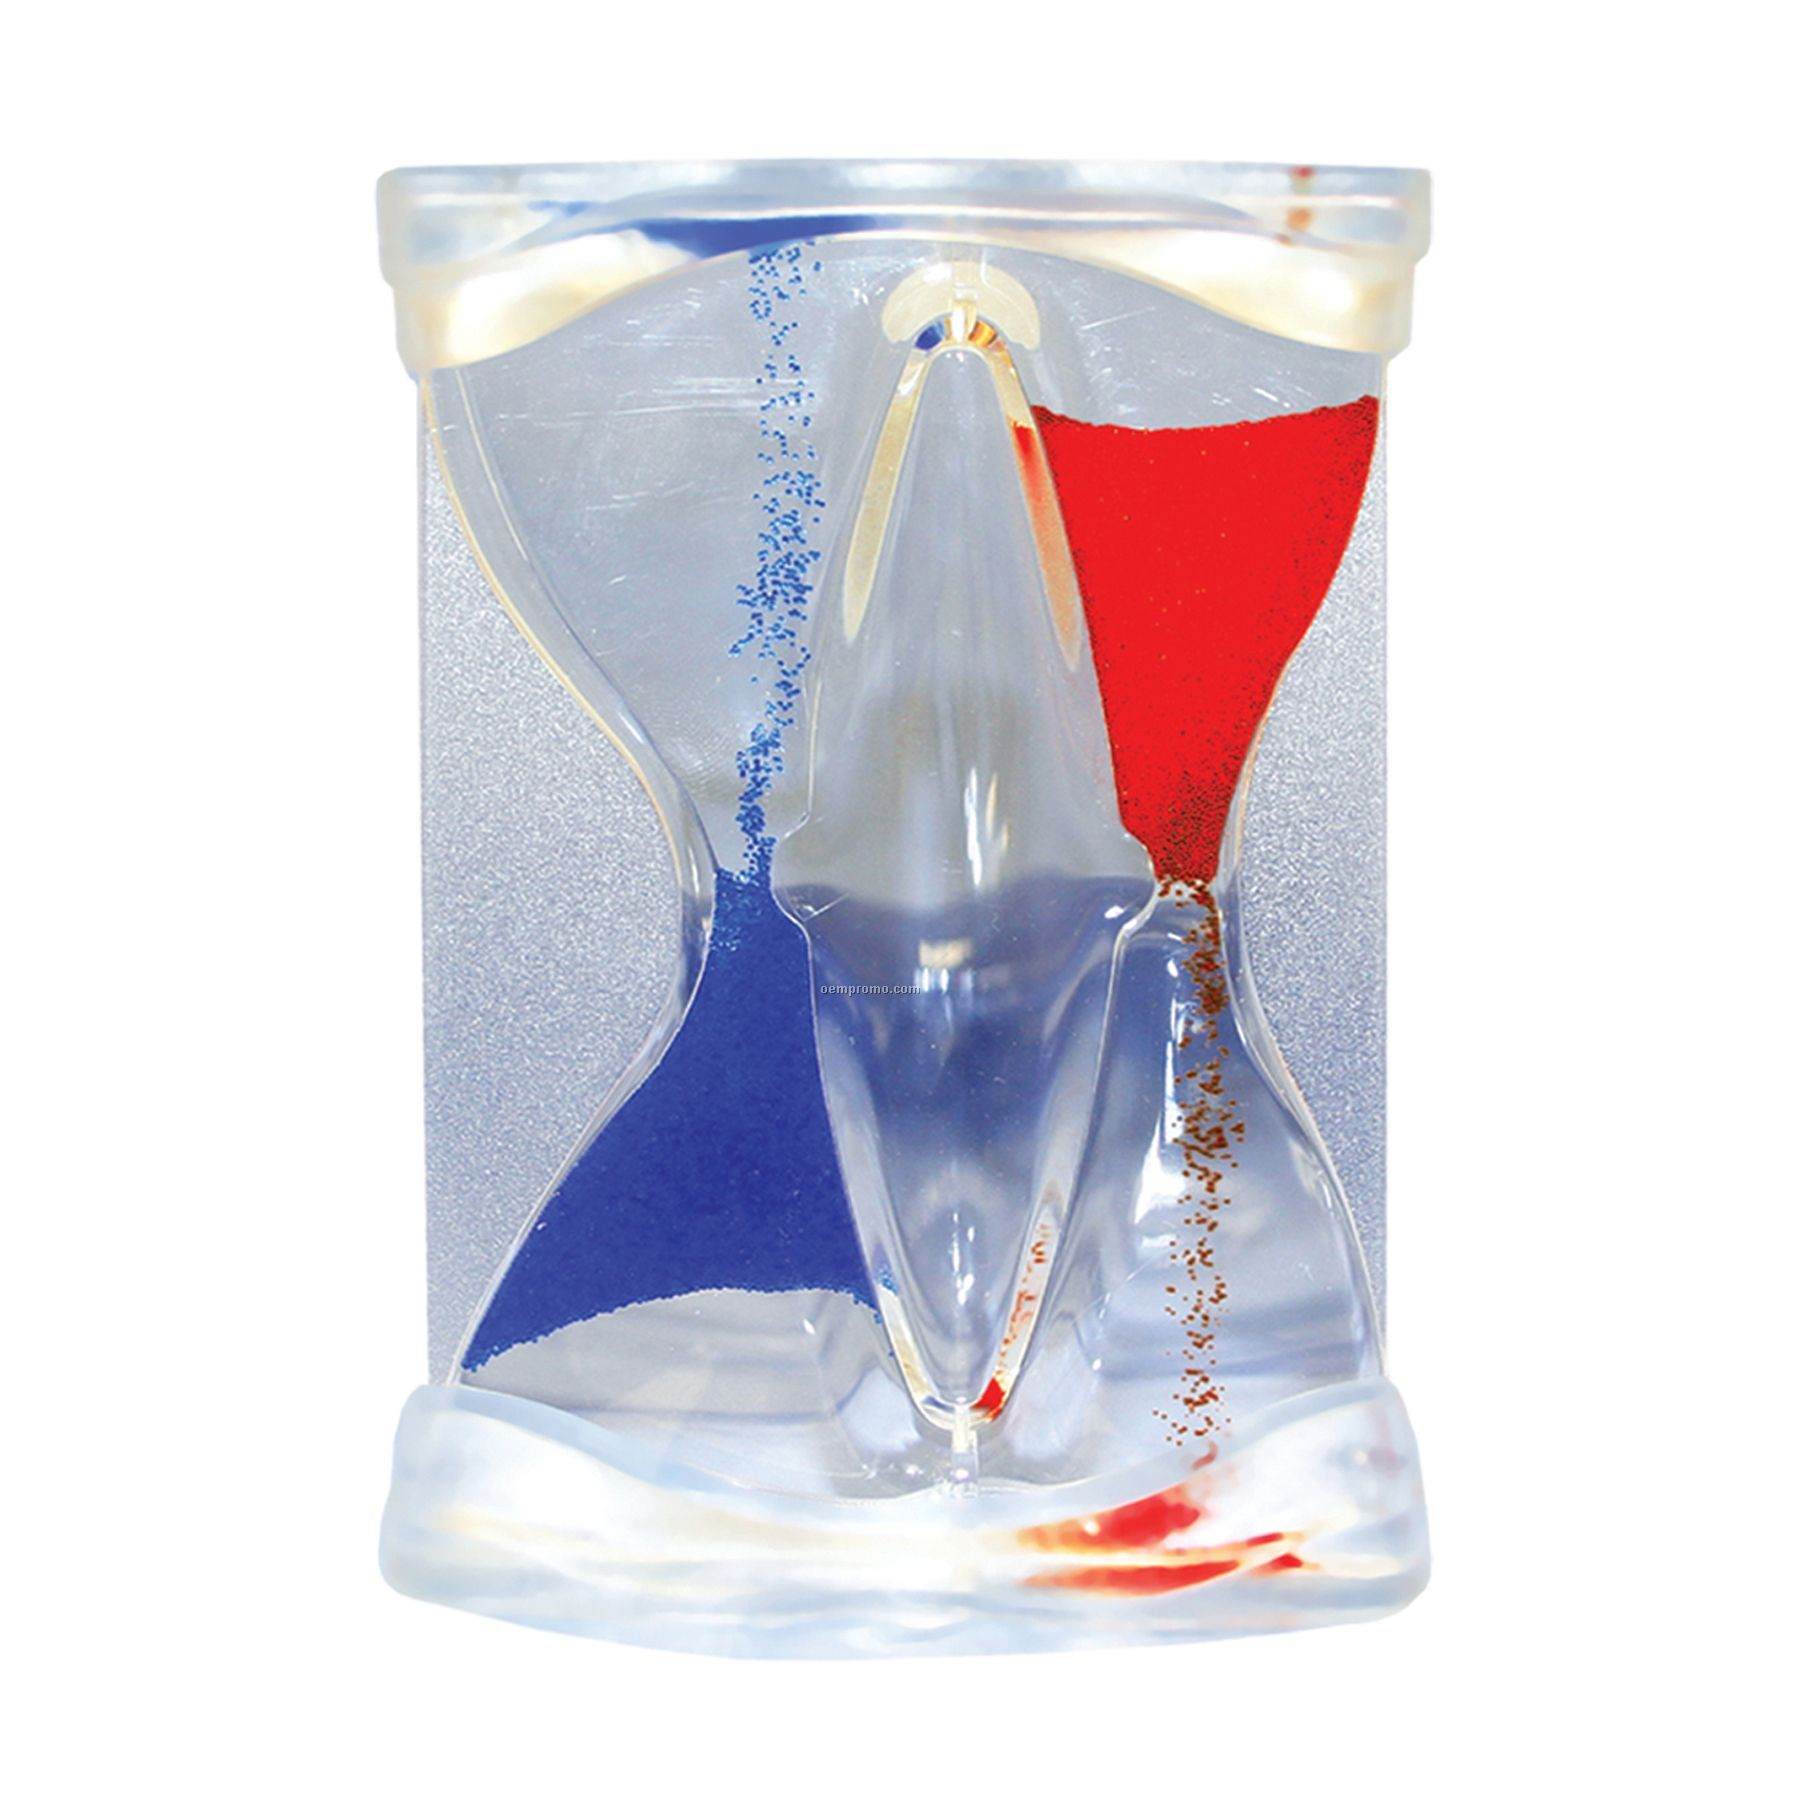 Inverse Flow Liquid Timer - Blue/Red